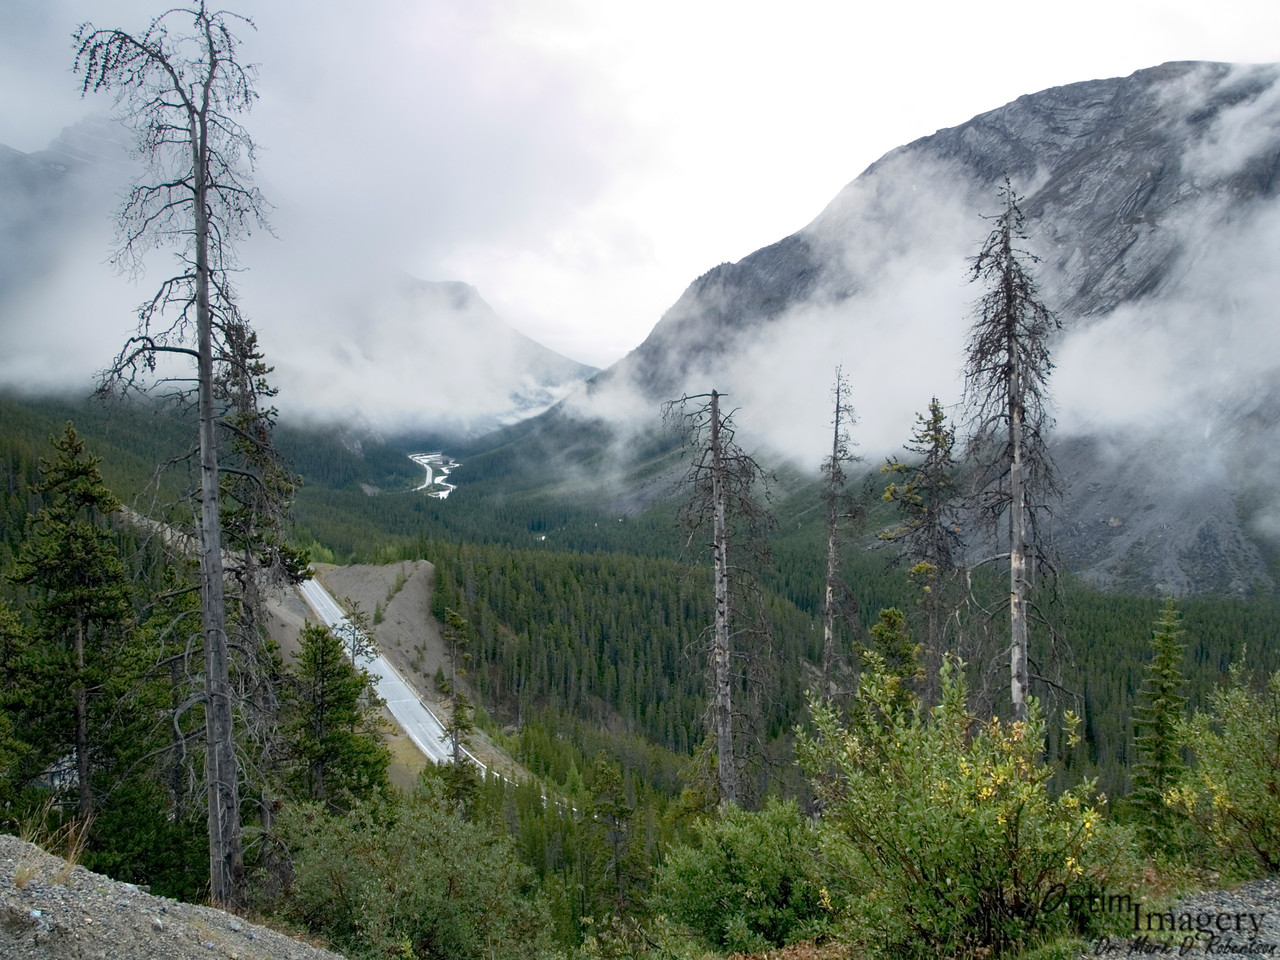 Looking back south, toward Banff, on the Icefields Parkway.